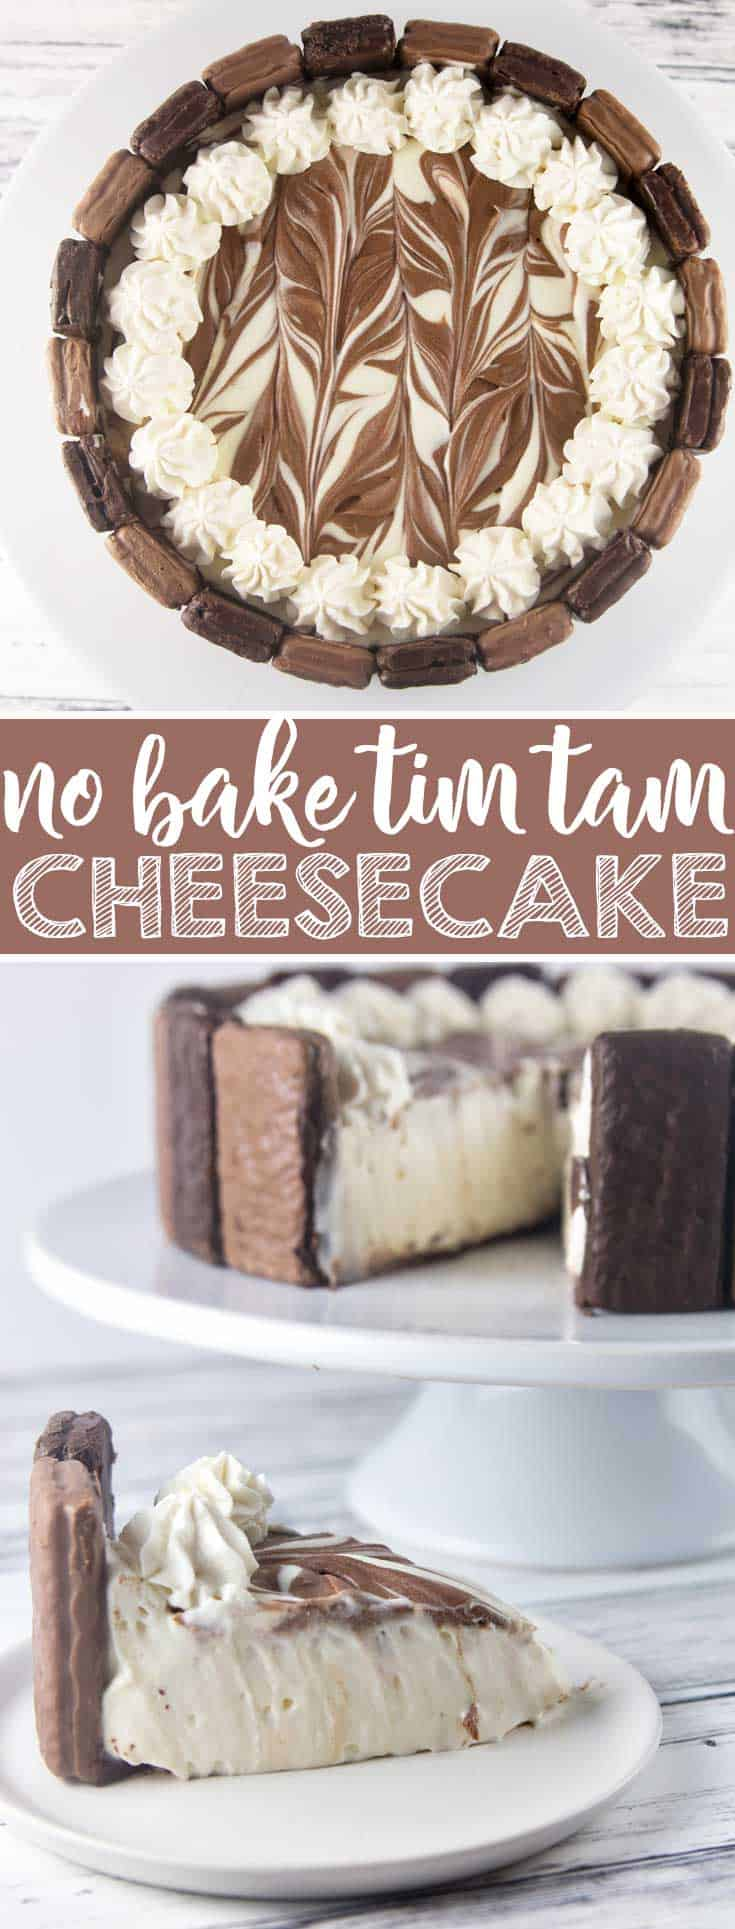 Tim Tam No Bake Cheesecake: the perfect quick and easy holiday entertaining dessert. Crunchy Tim Tams paired with a light, smooth no bake cheesecake filling, and a pure chocolate crust. Heavenly! {Bunsen Burner Bakery} #cheesecake #timtams #nobakecheesecake #nobake